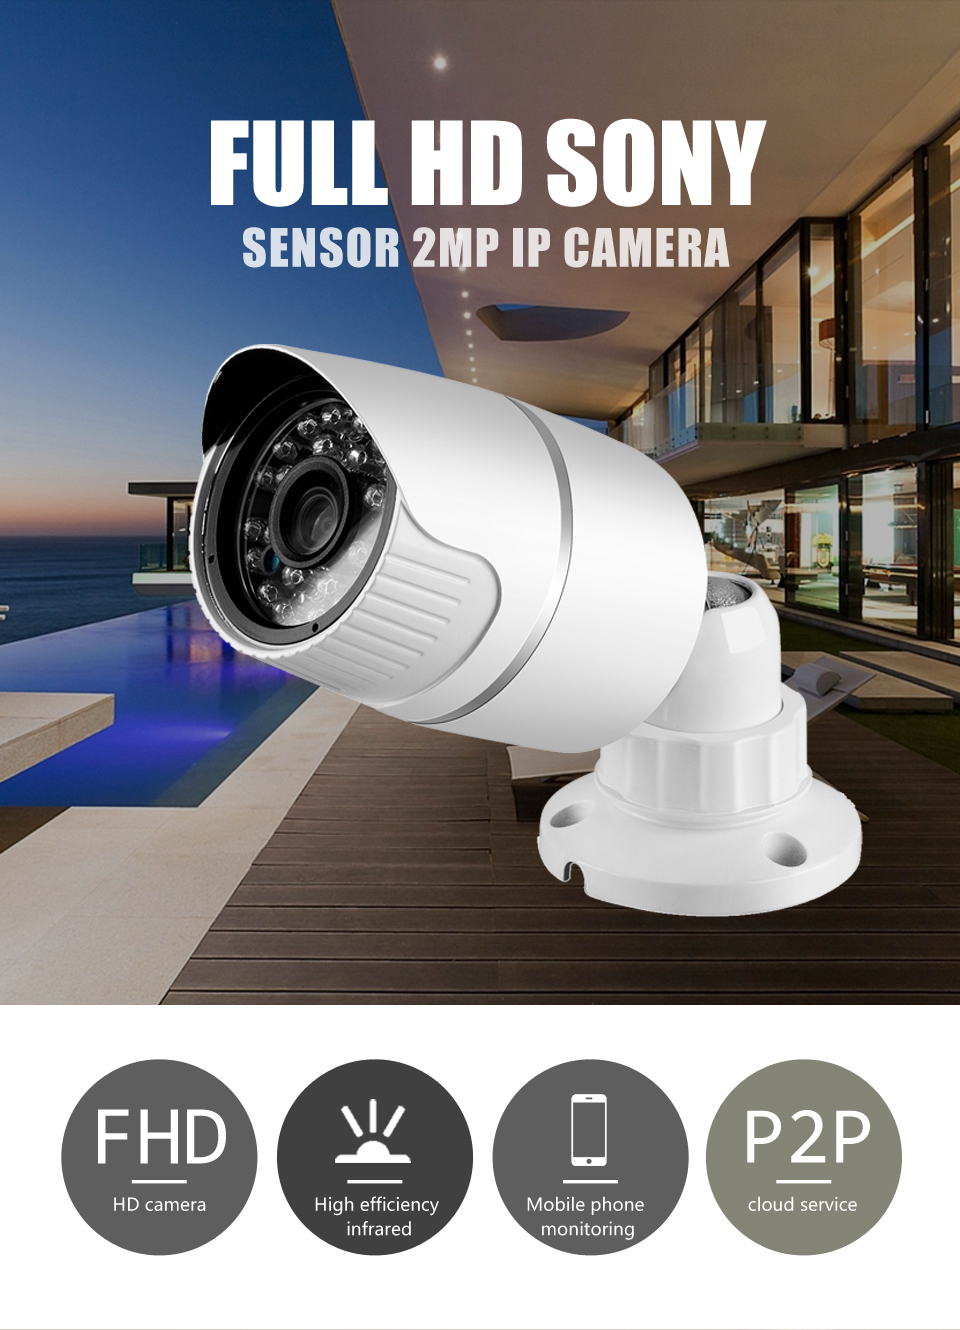 1080P Outdoor Security Camera 2MP Metal Bullet CCTV Camera IP HI3516C+SONY IMX322 25fps ONVIF Camera IP ONVIF wistino cctv camera metal housing outdoor use waterproof bullet casing for ip camera hot sale white color cover case